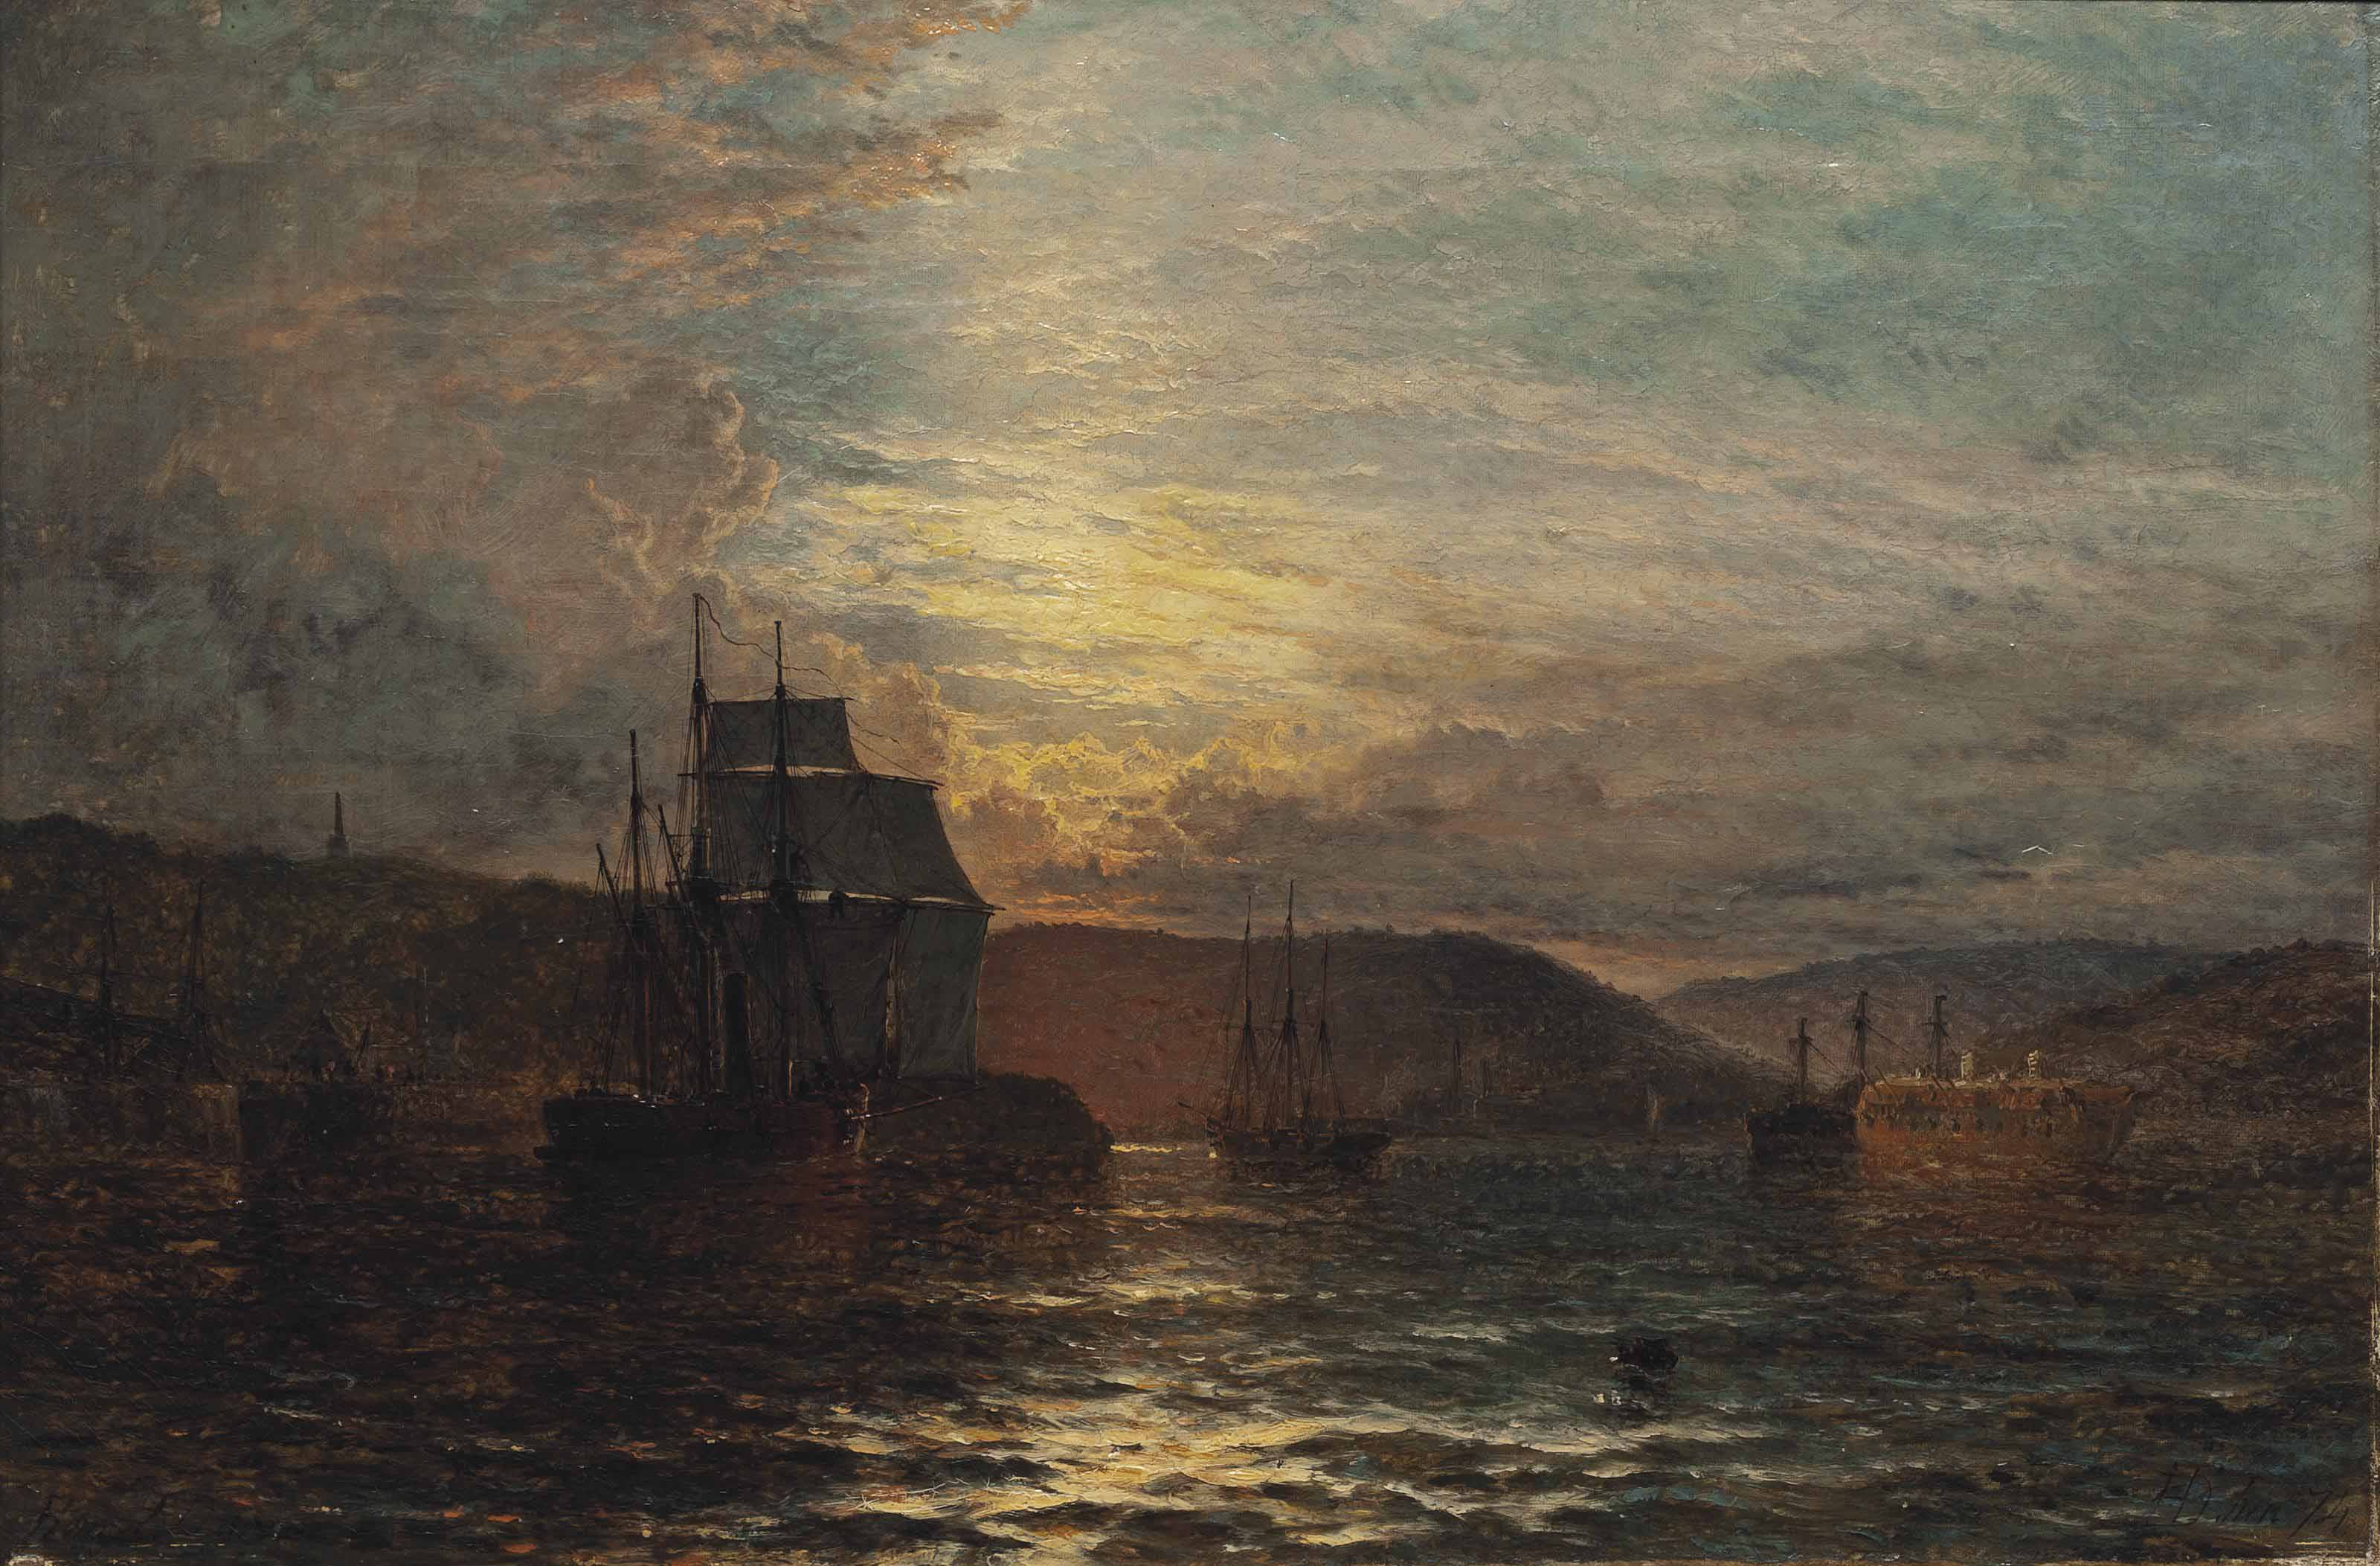 A screw steamer and other vessels moored by a harbour wall, a prison hulk beyond